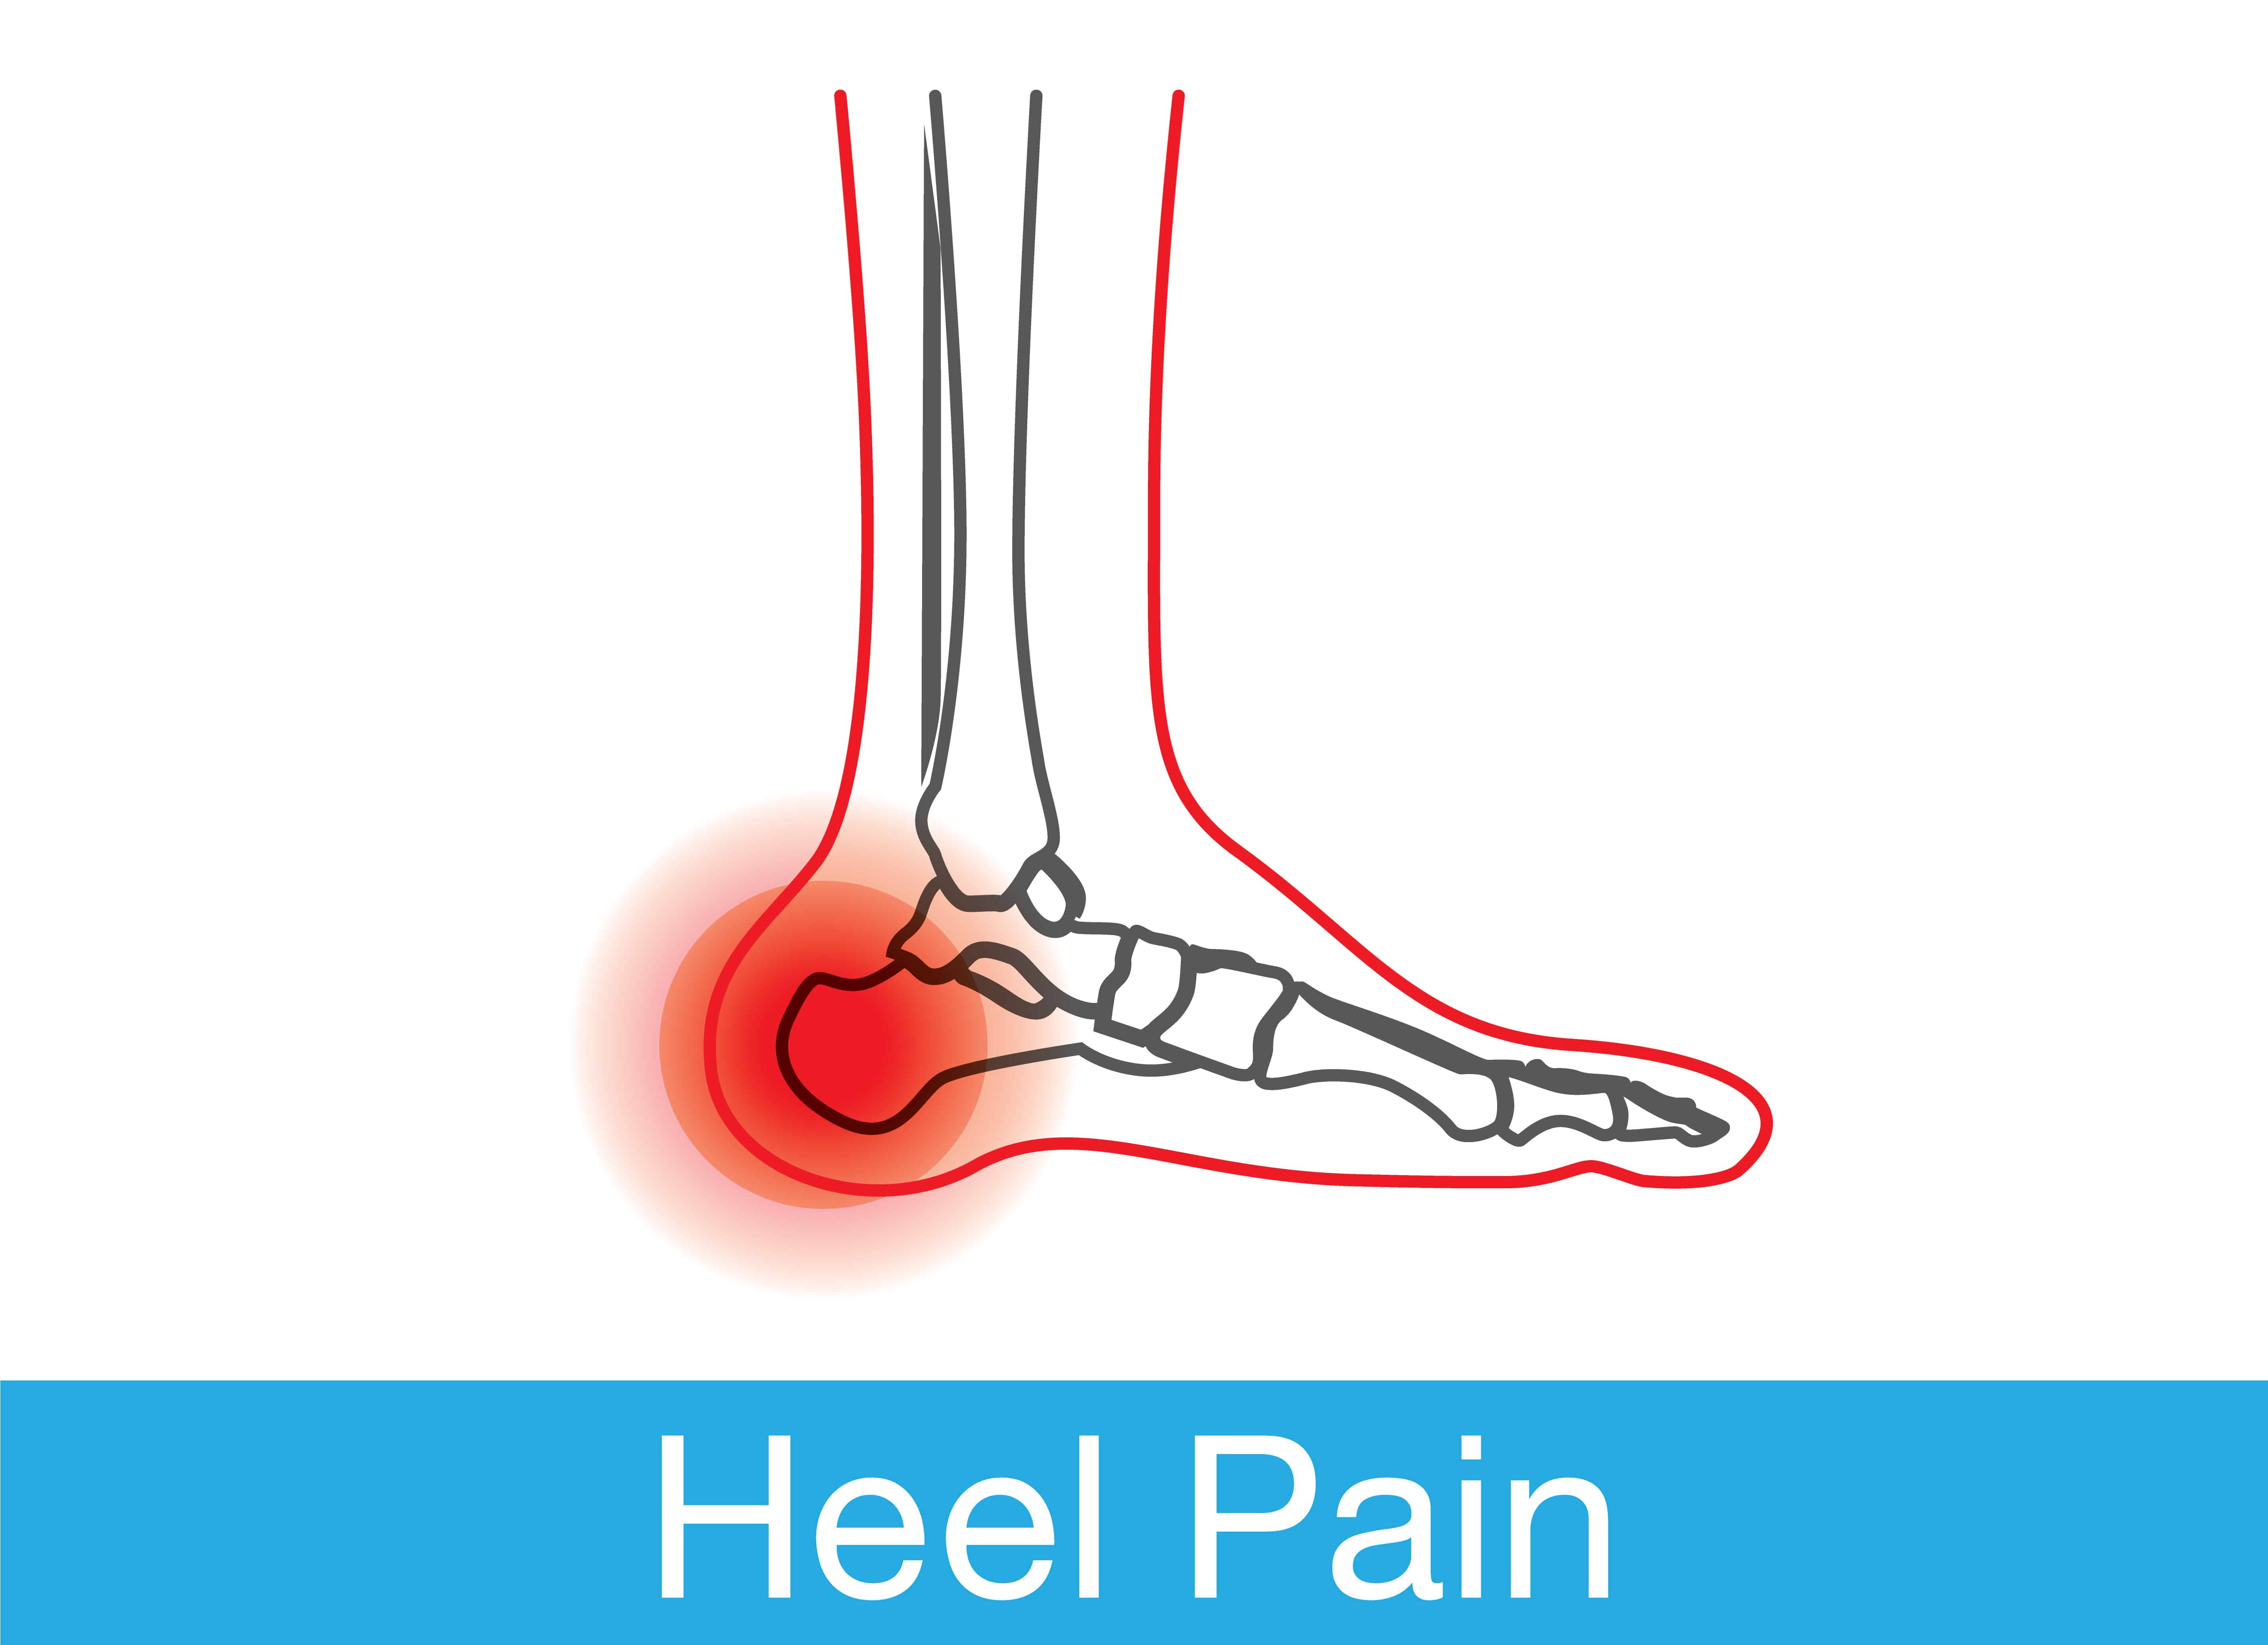 Dr Foot's favourite treatments for heel pain